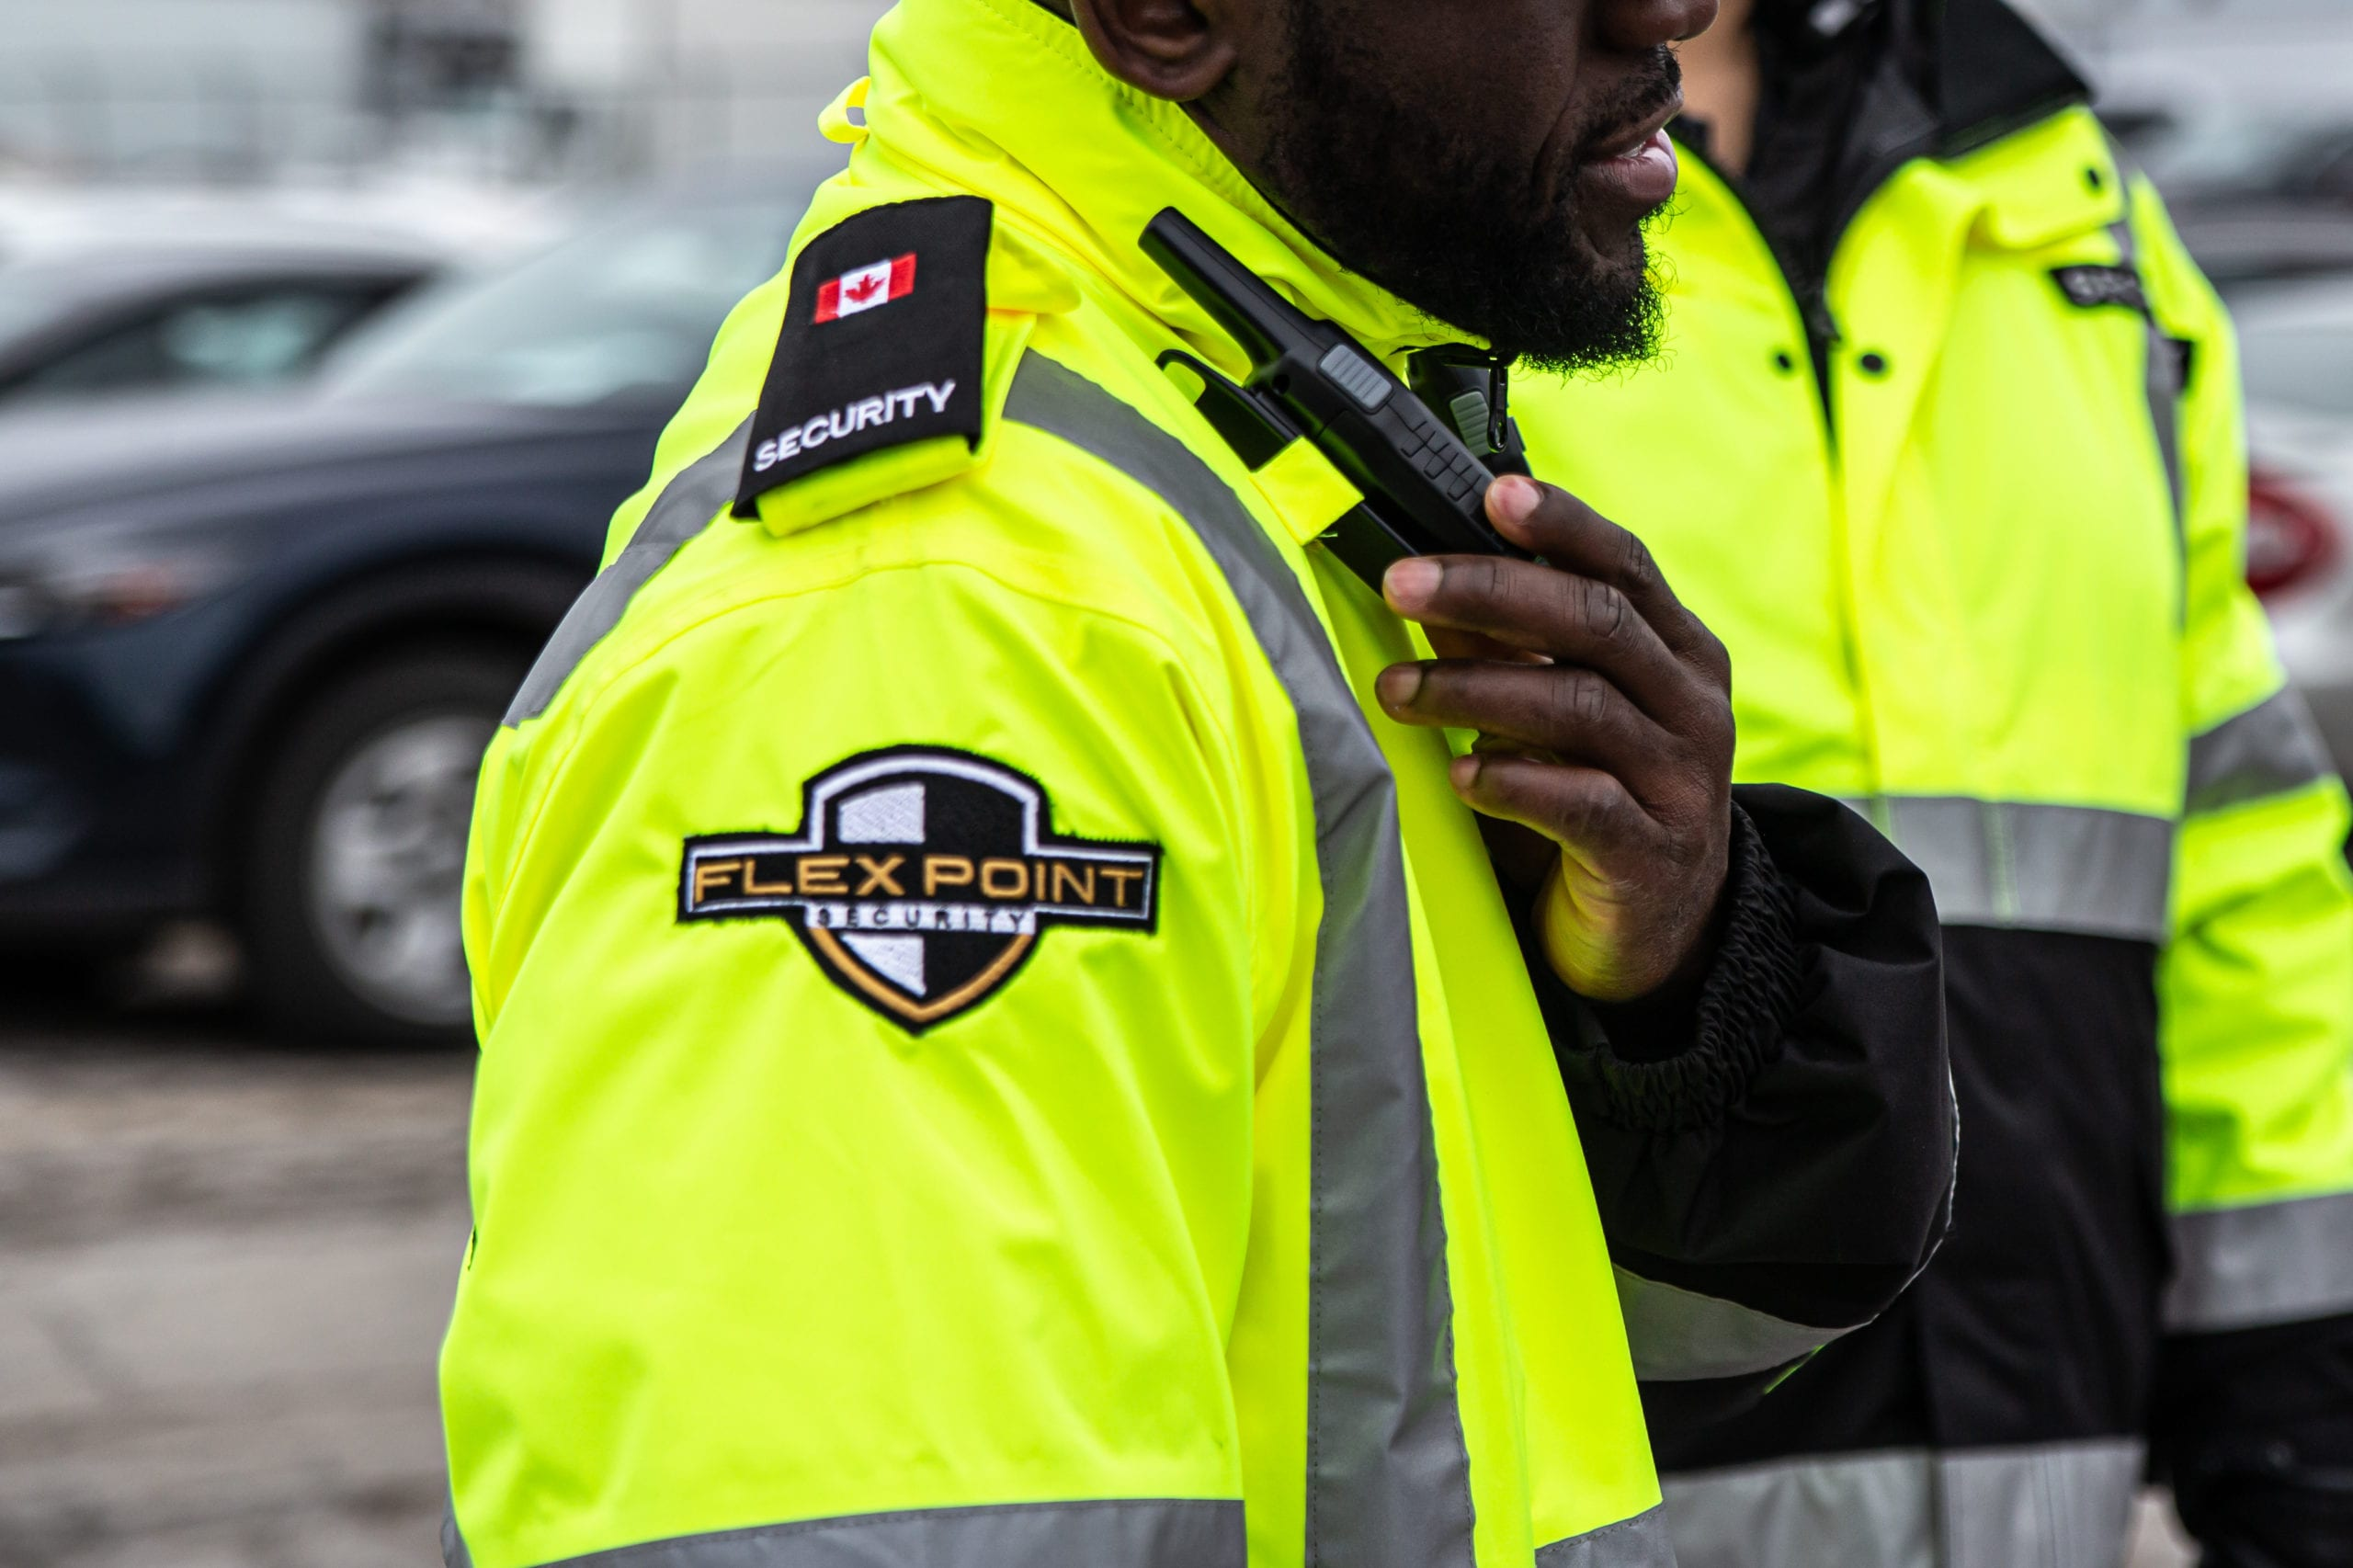 Two Flex Point Security guards standing in a parking lot in branded yellow jackets